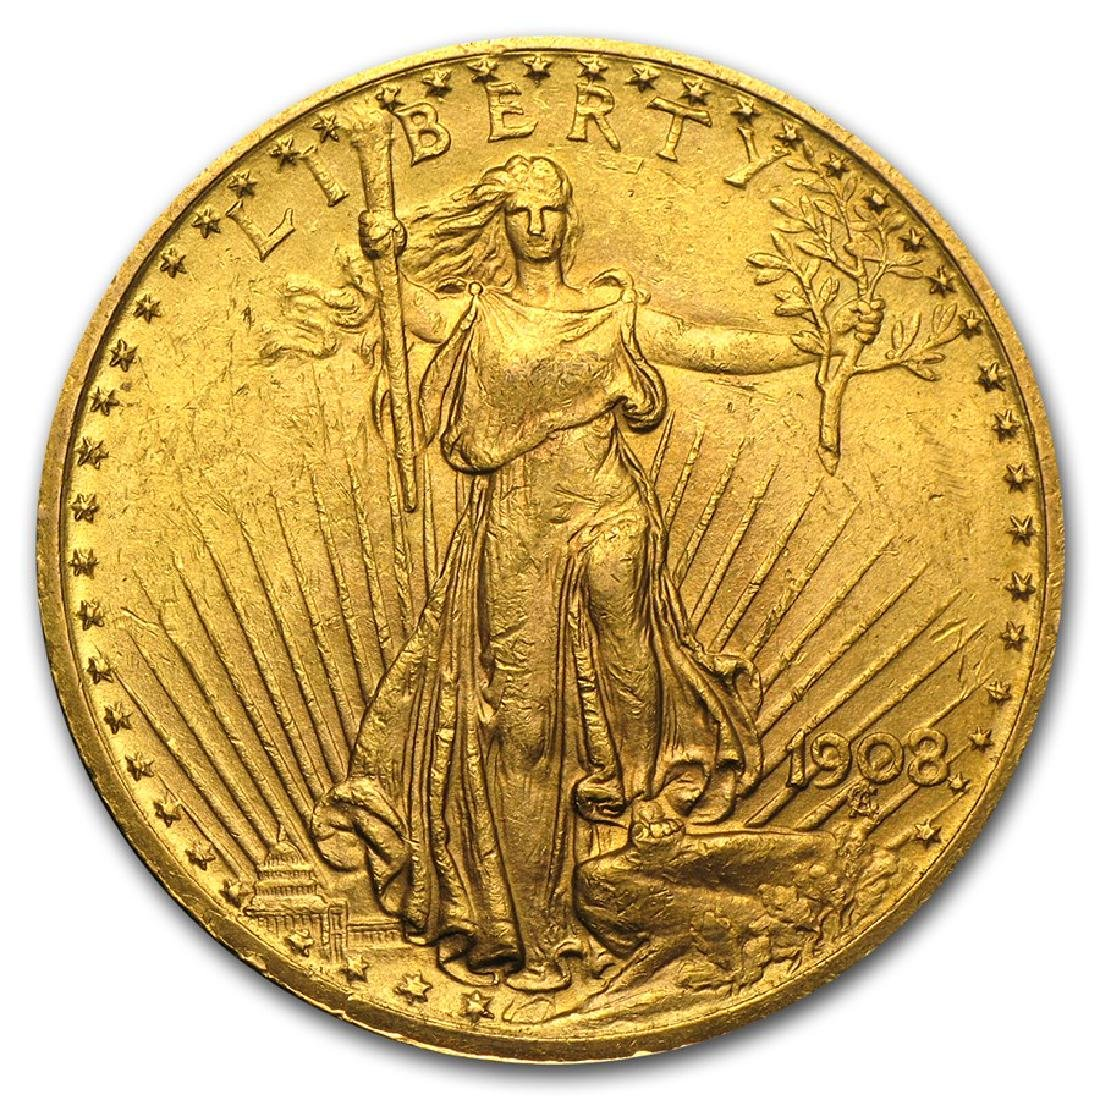 1908 $20 Saint Gaudens Double Eagle with Motto Gold